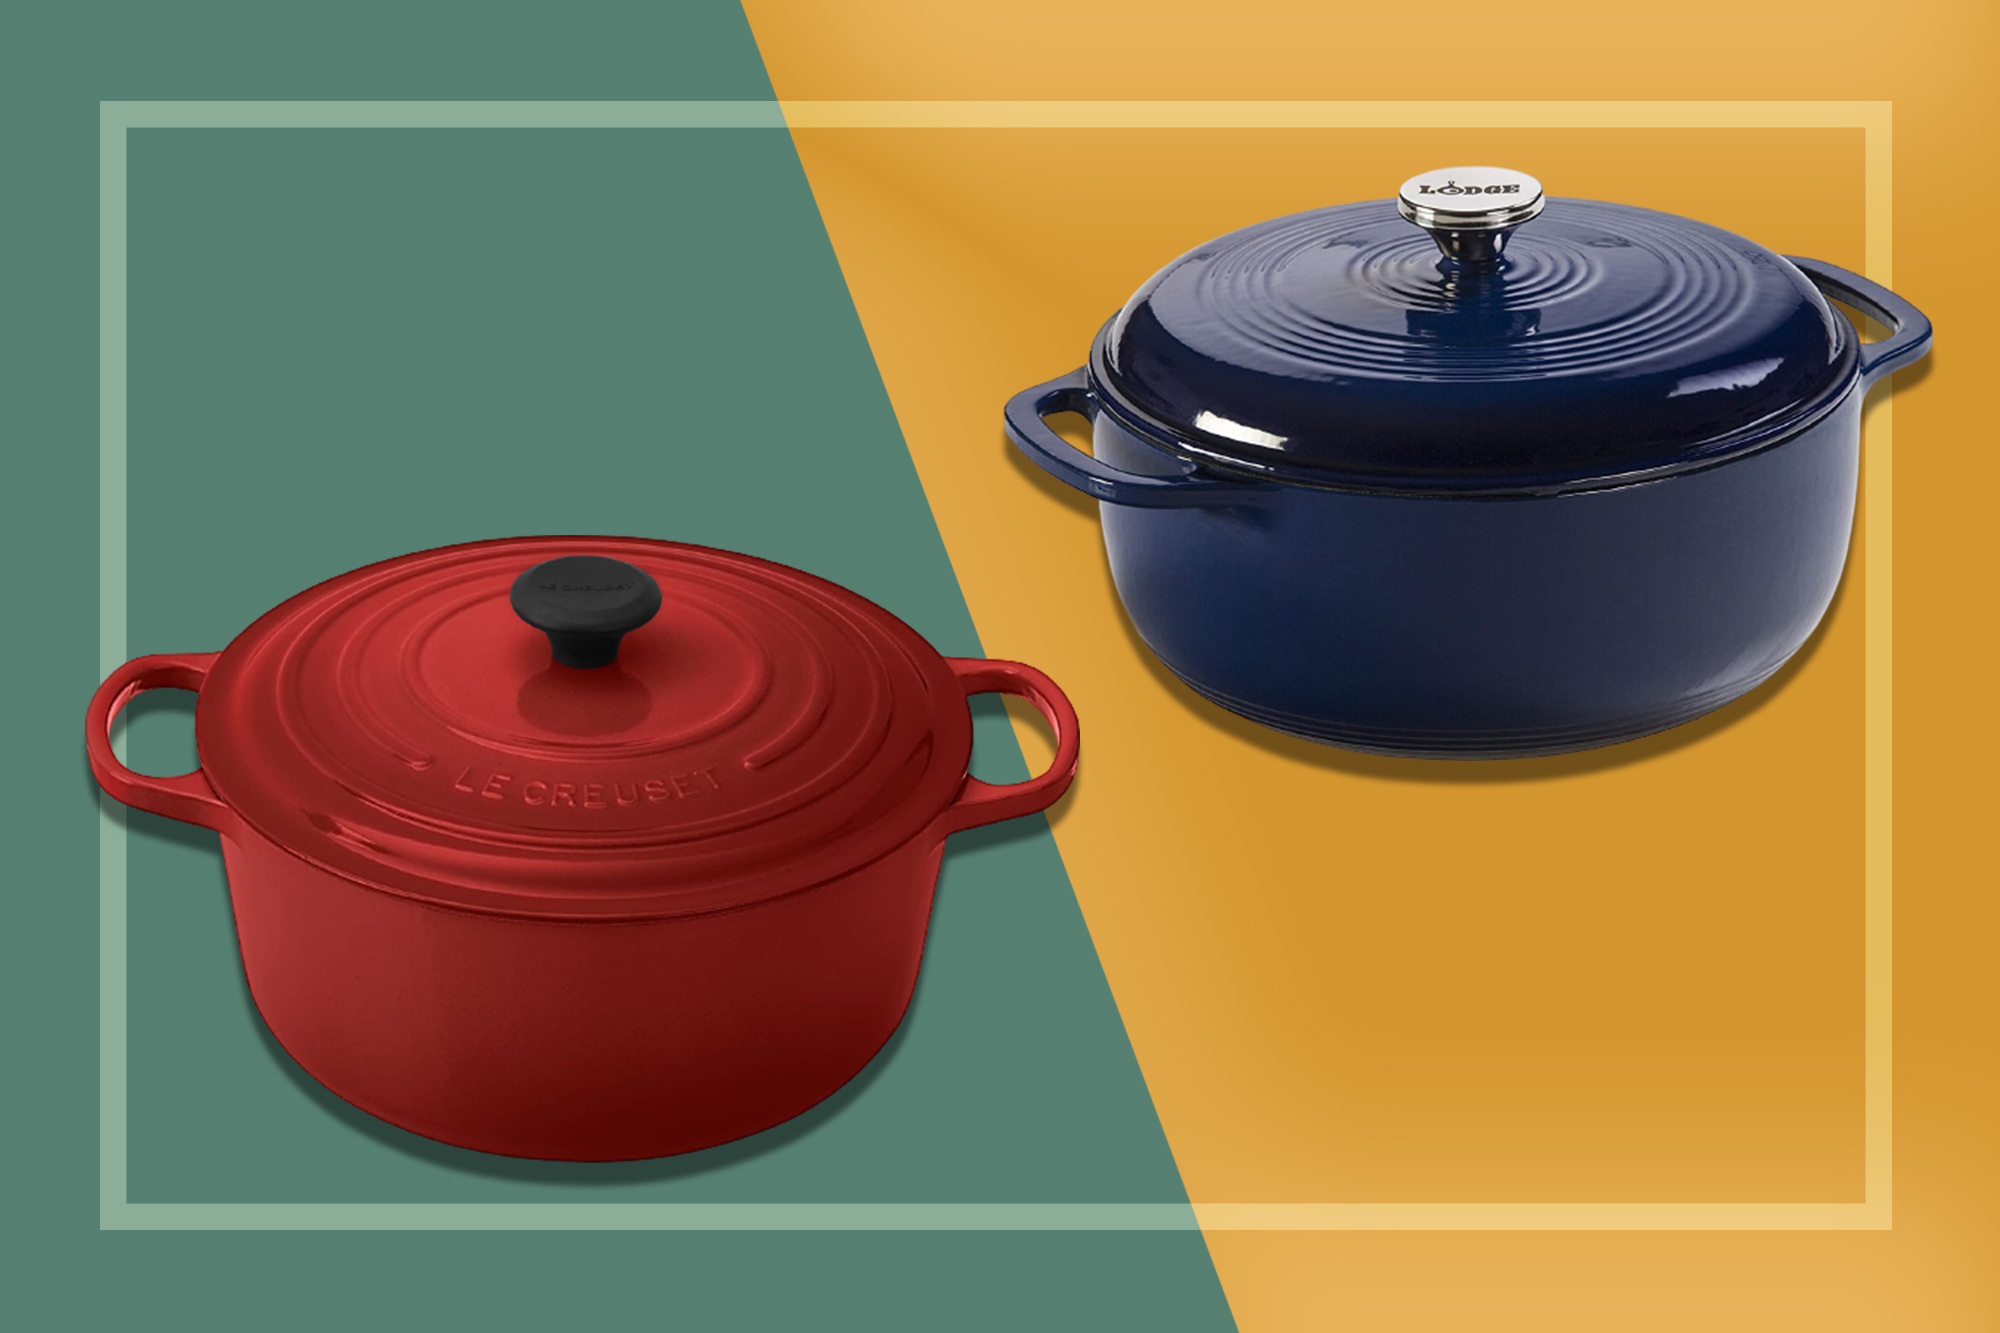 Every Home Cook Needs a Dutch Oven—Here Are 9 of the Best